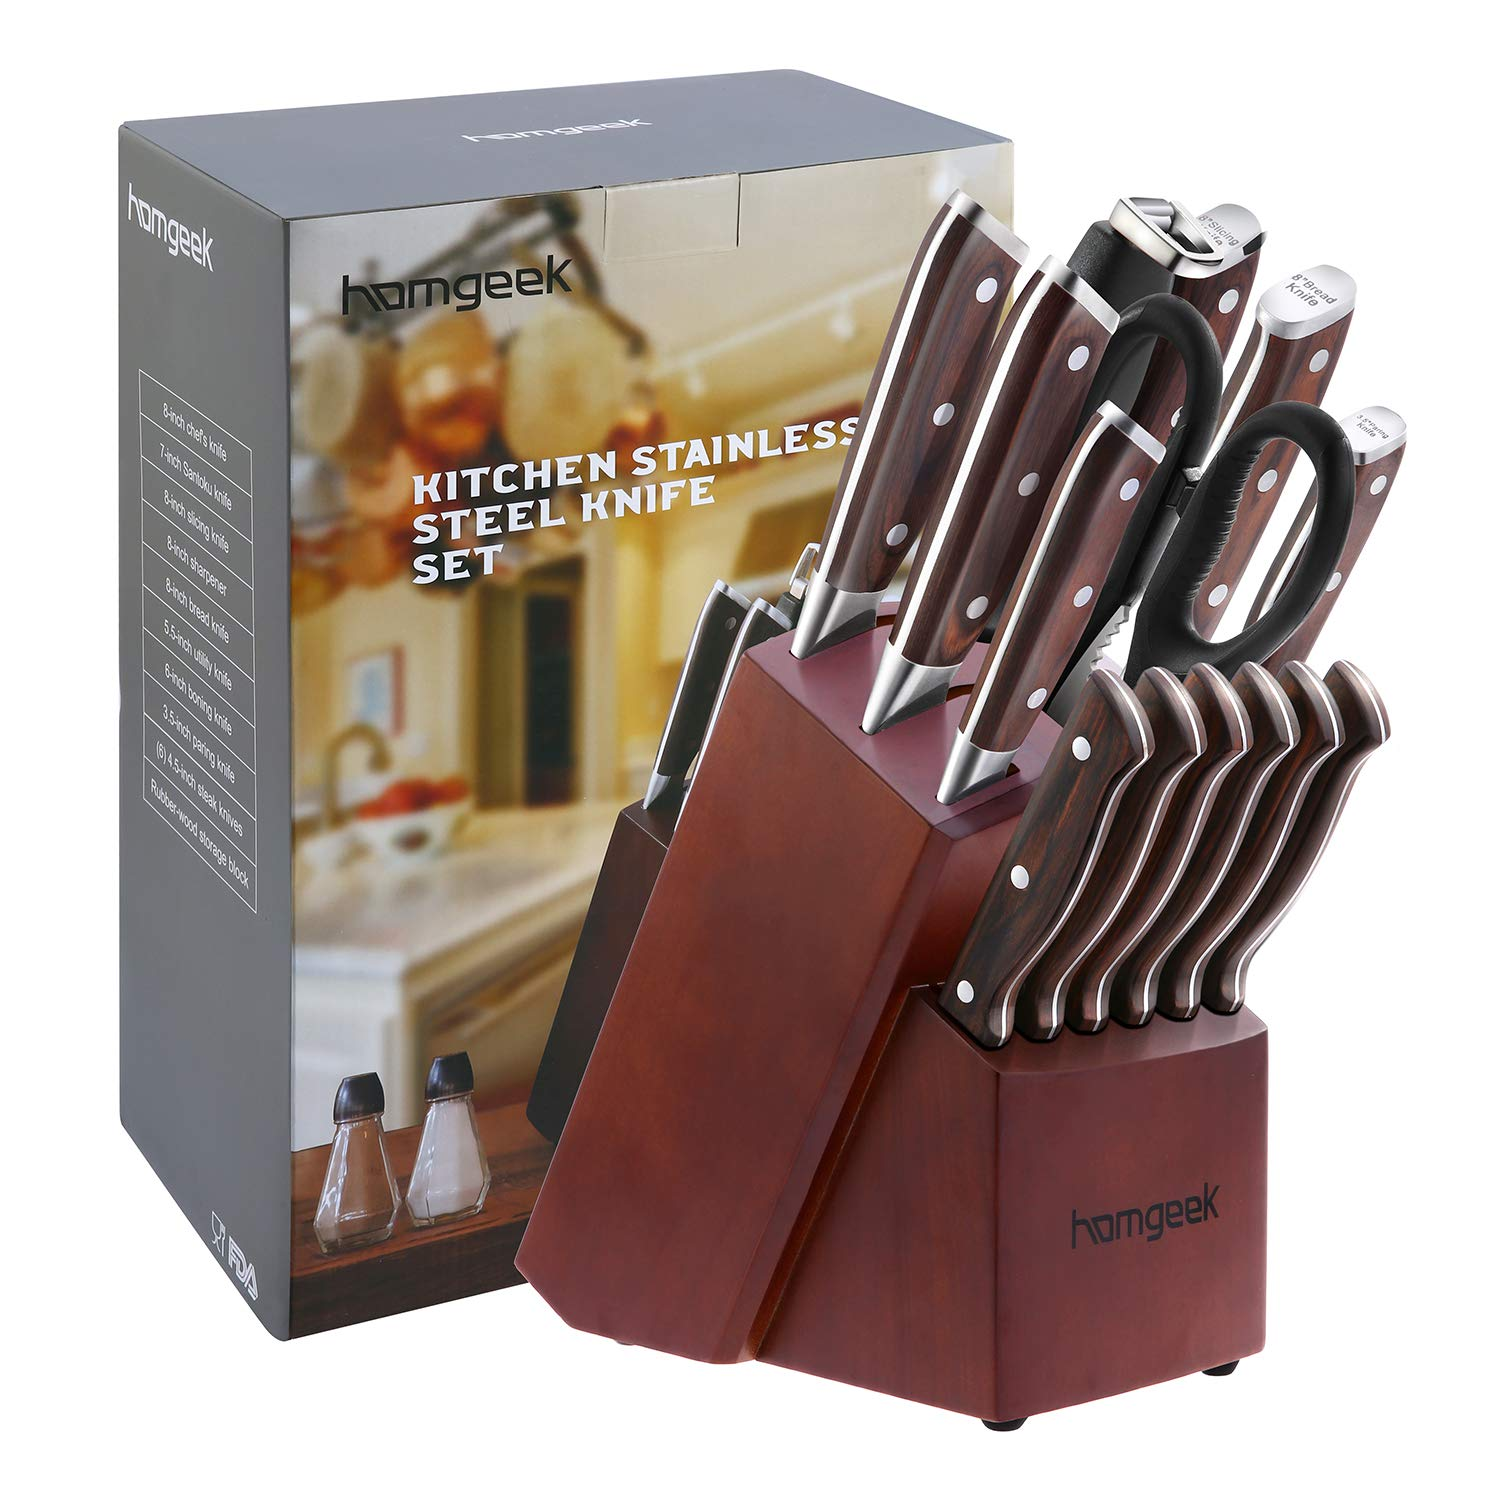 Chef Knife Set,15 Piece Knife set With Wooden Block,Wood Handle and German 1.4116 Stainless Steel,Full-Tang by homgeek (Image #9)